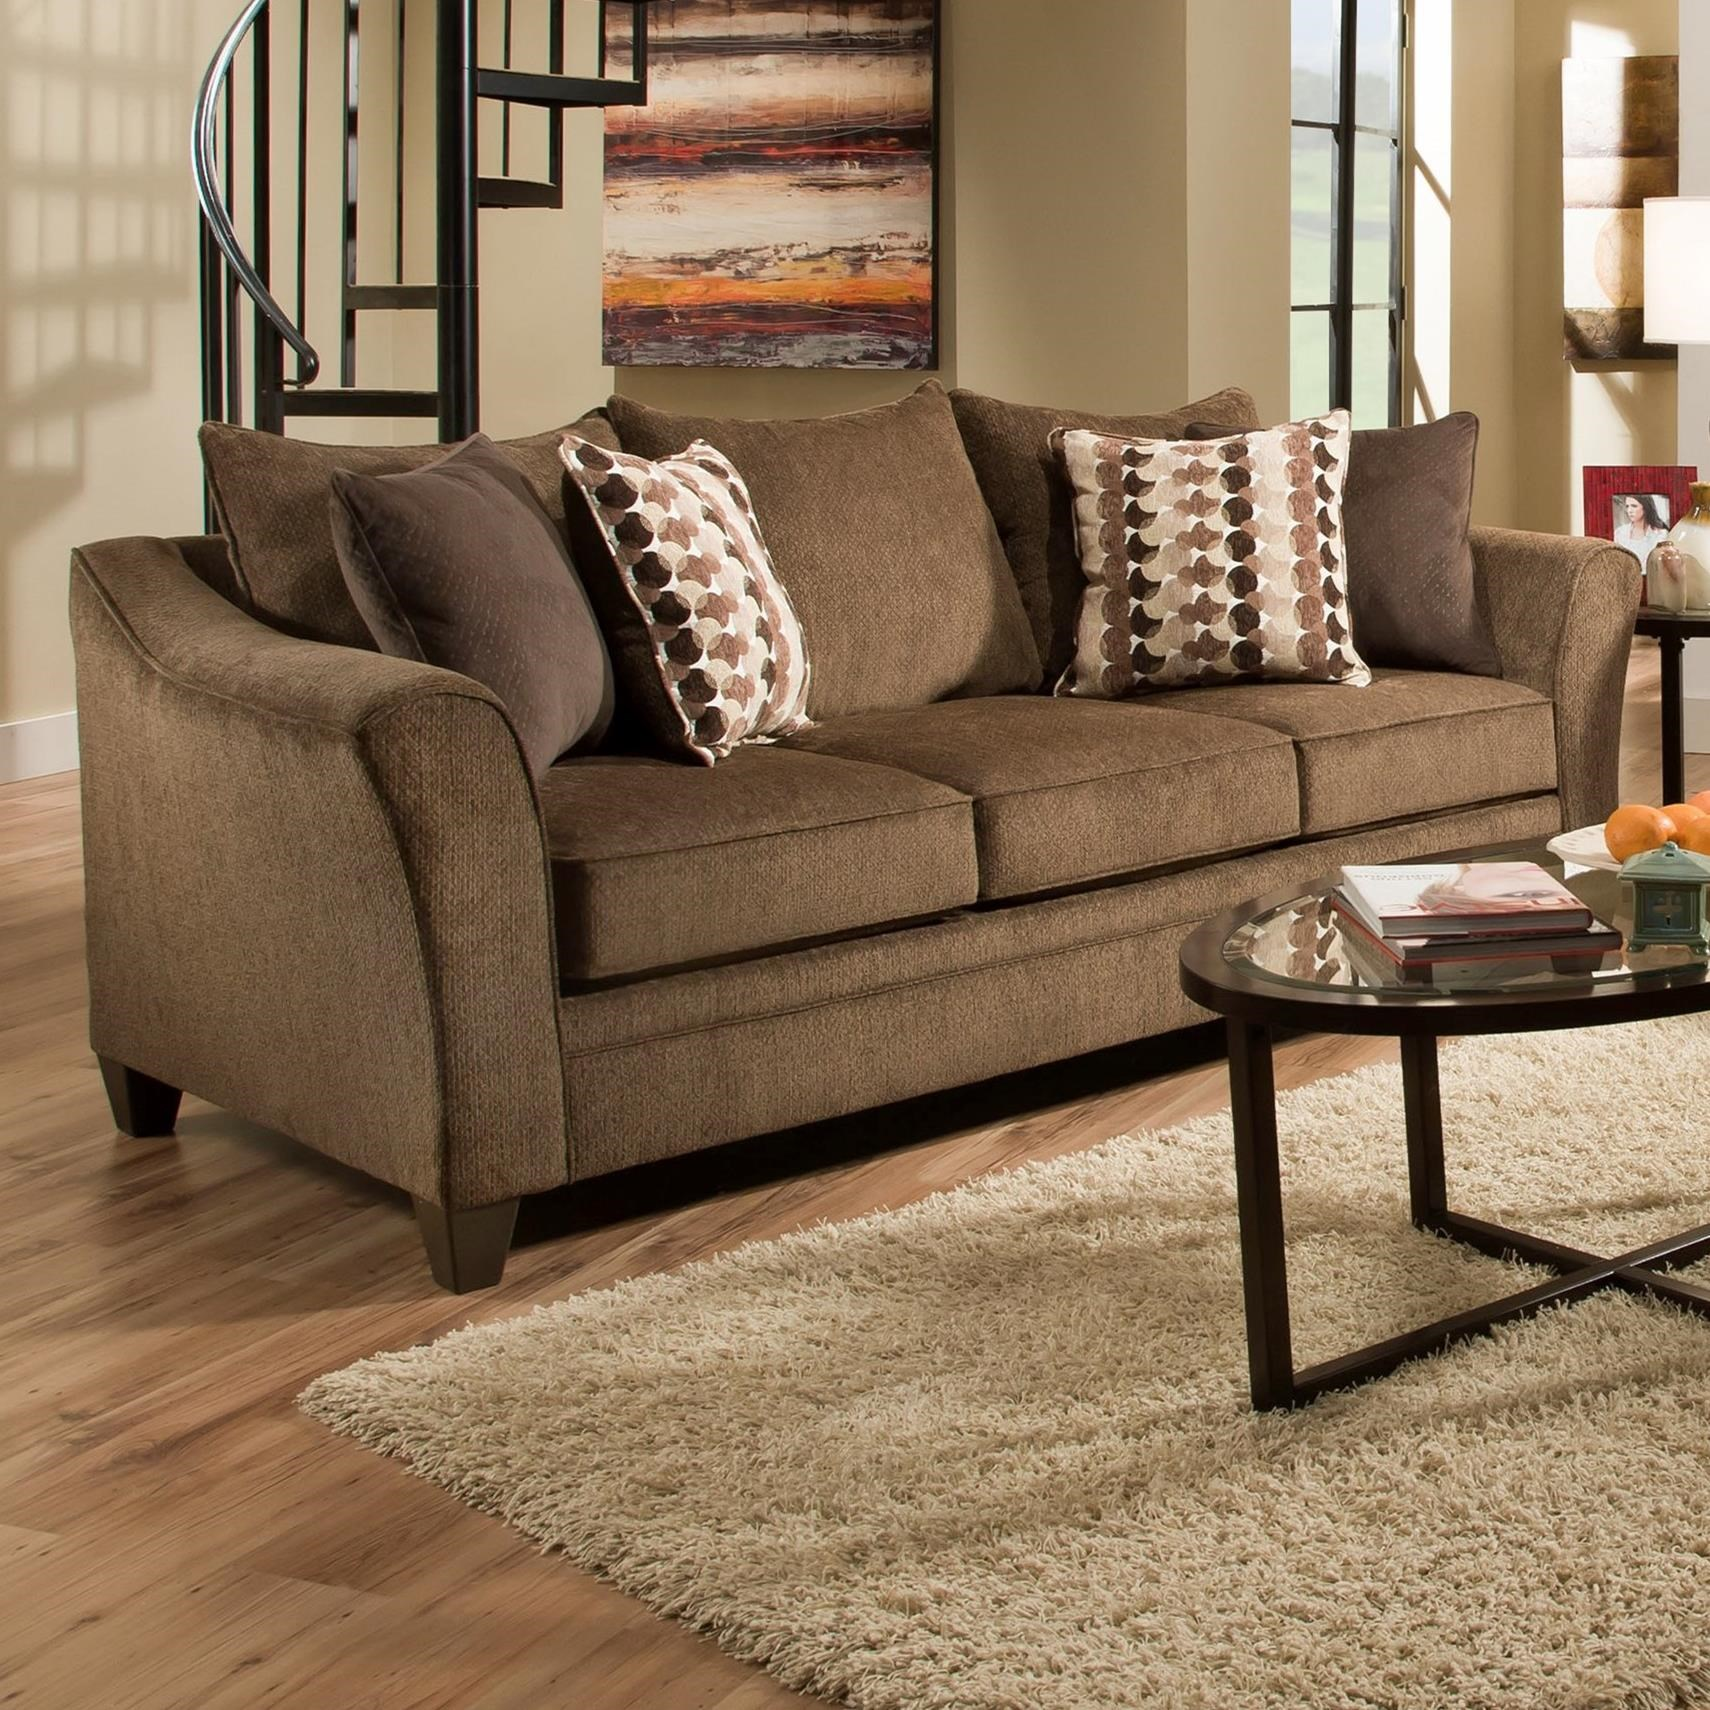 6485 Transitional Sofa by United Furniture Industries at Dream Home Interiors